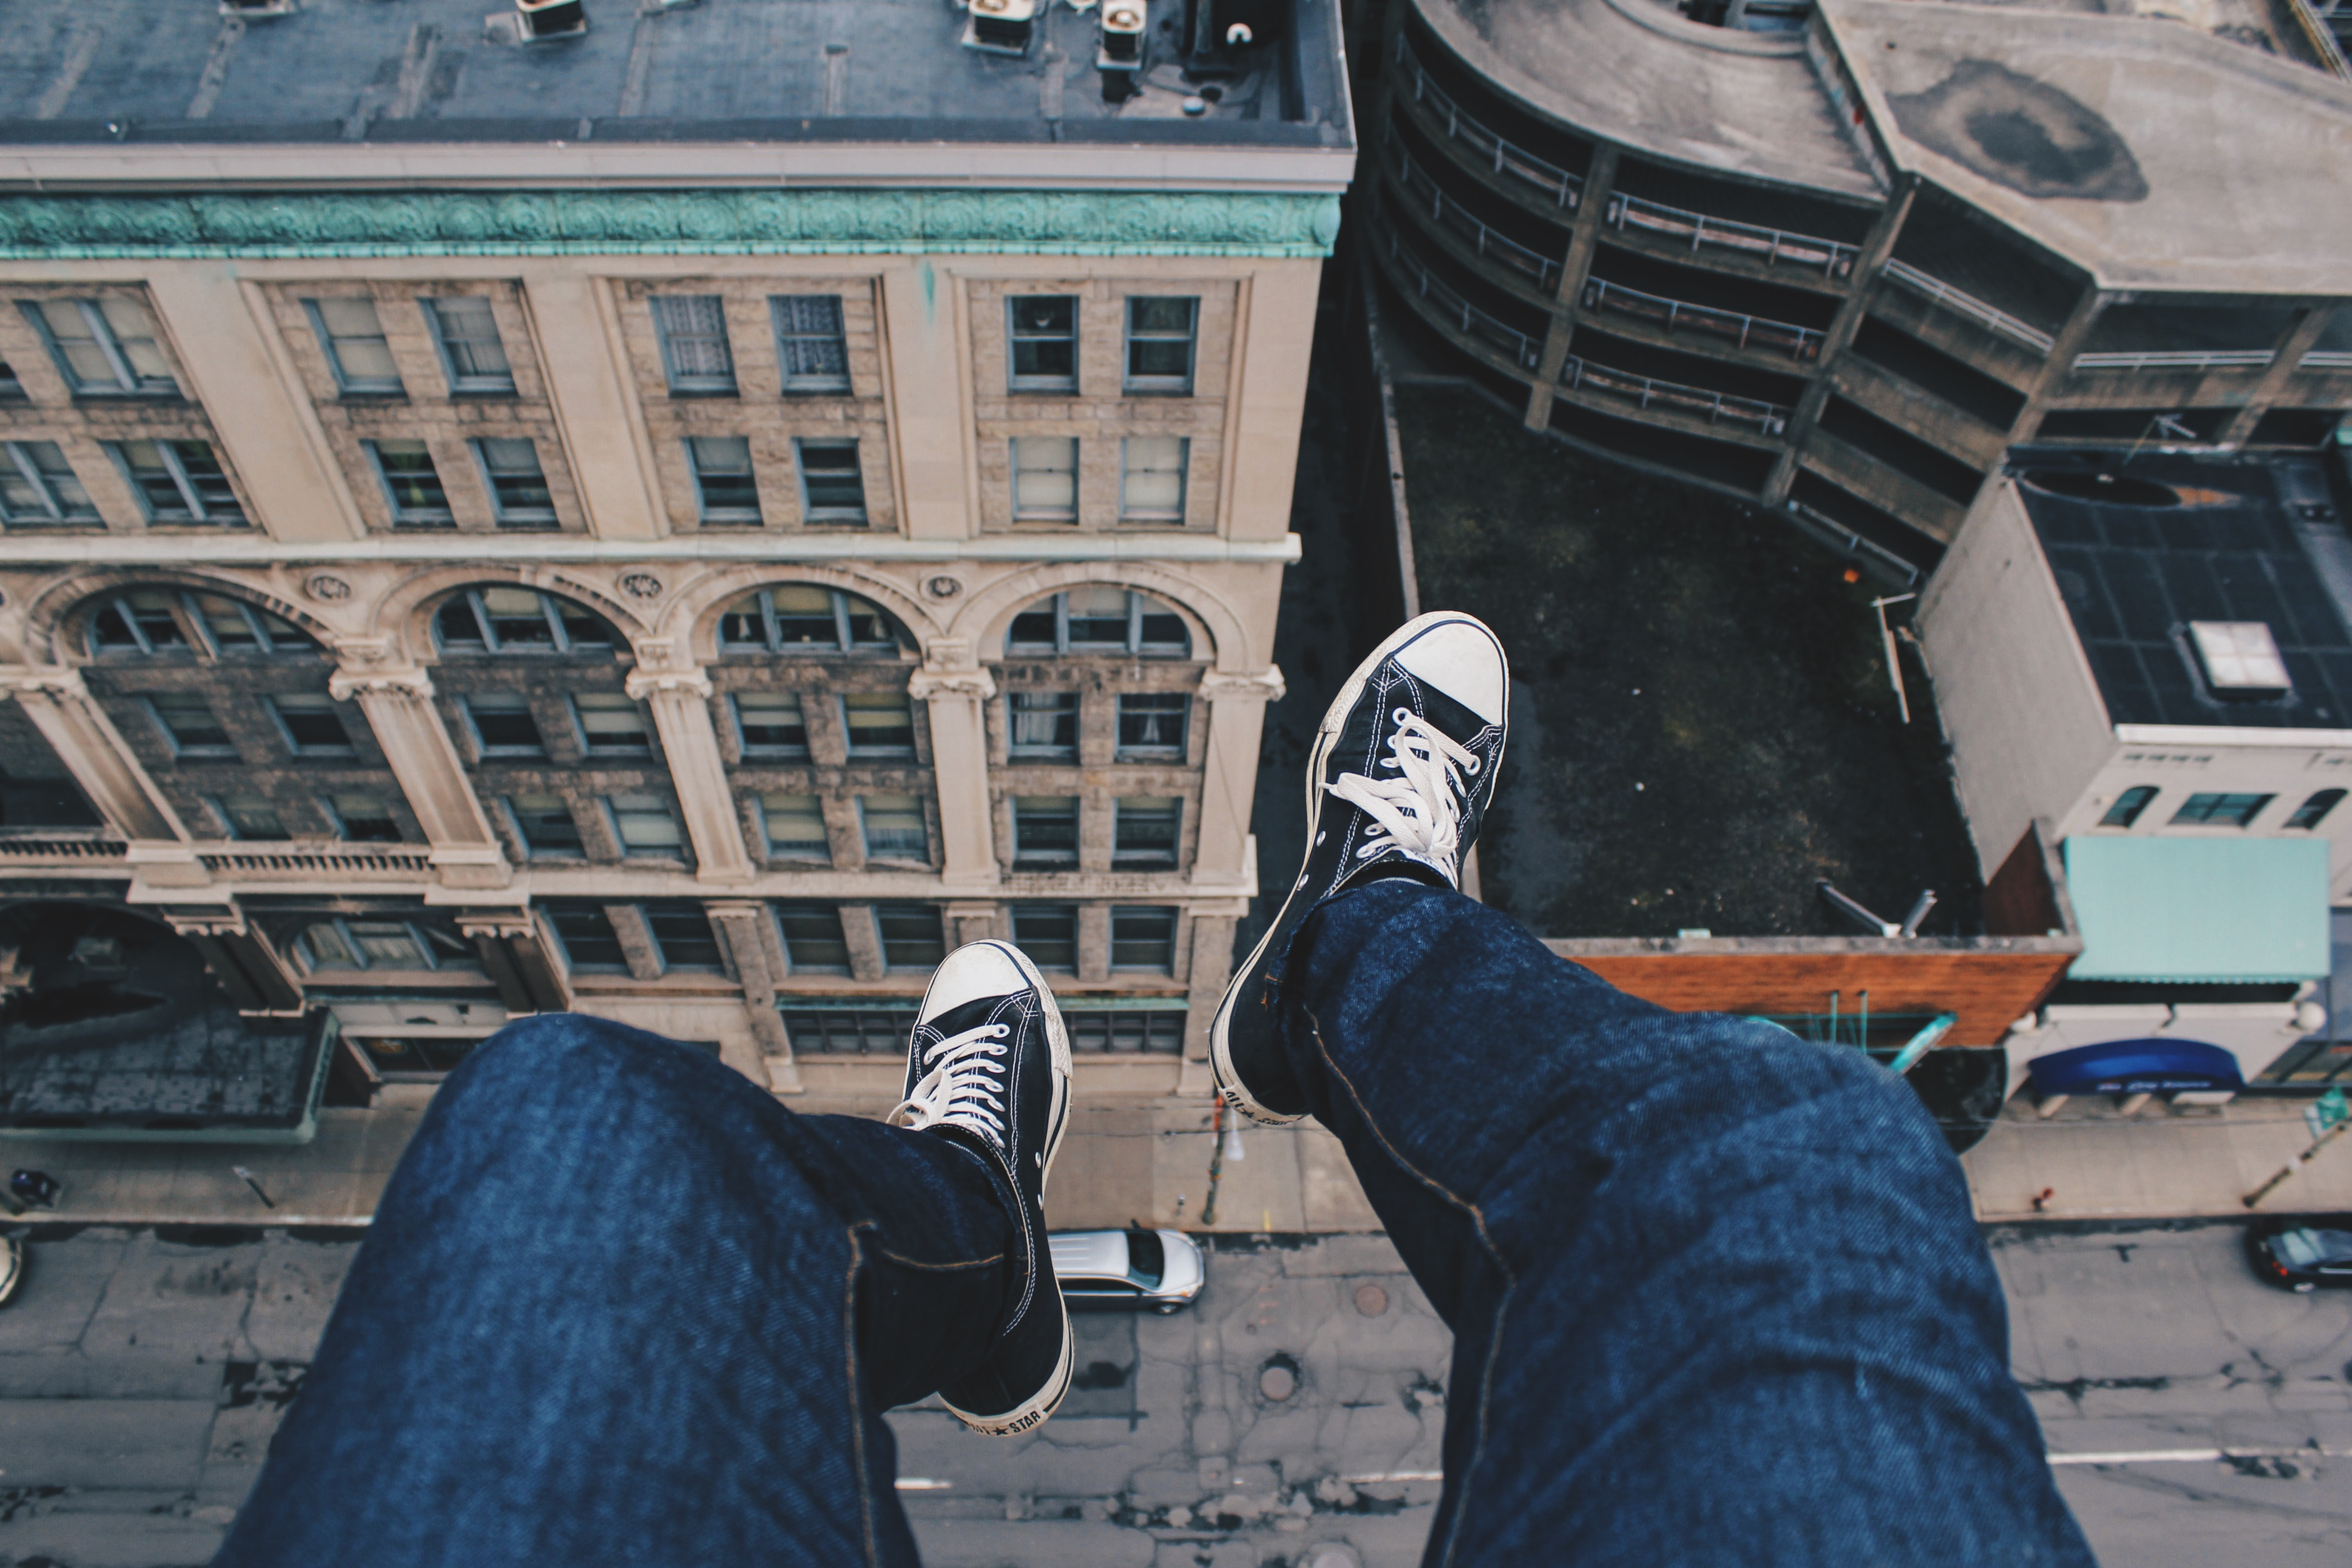 Person wearing Converse sneakers dangling their feet off building's rooftop ledge above the traffic